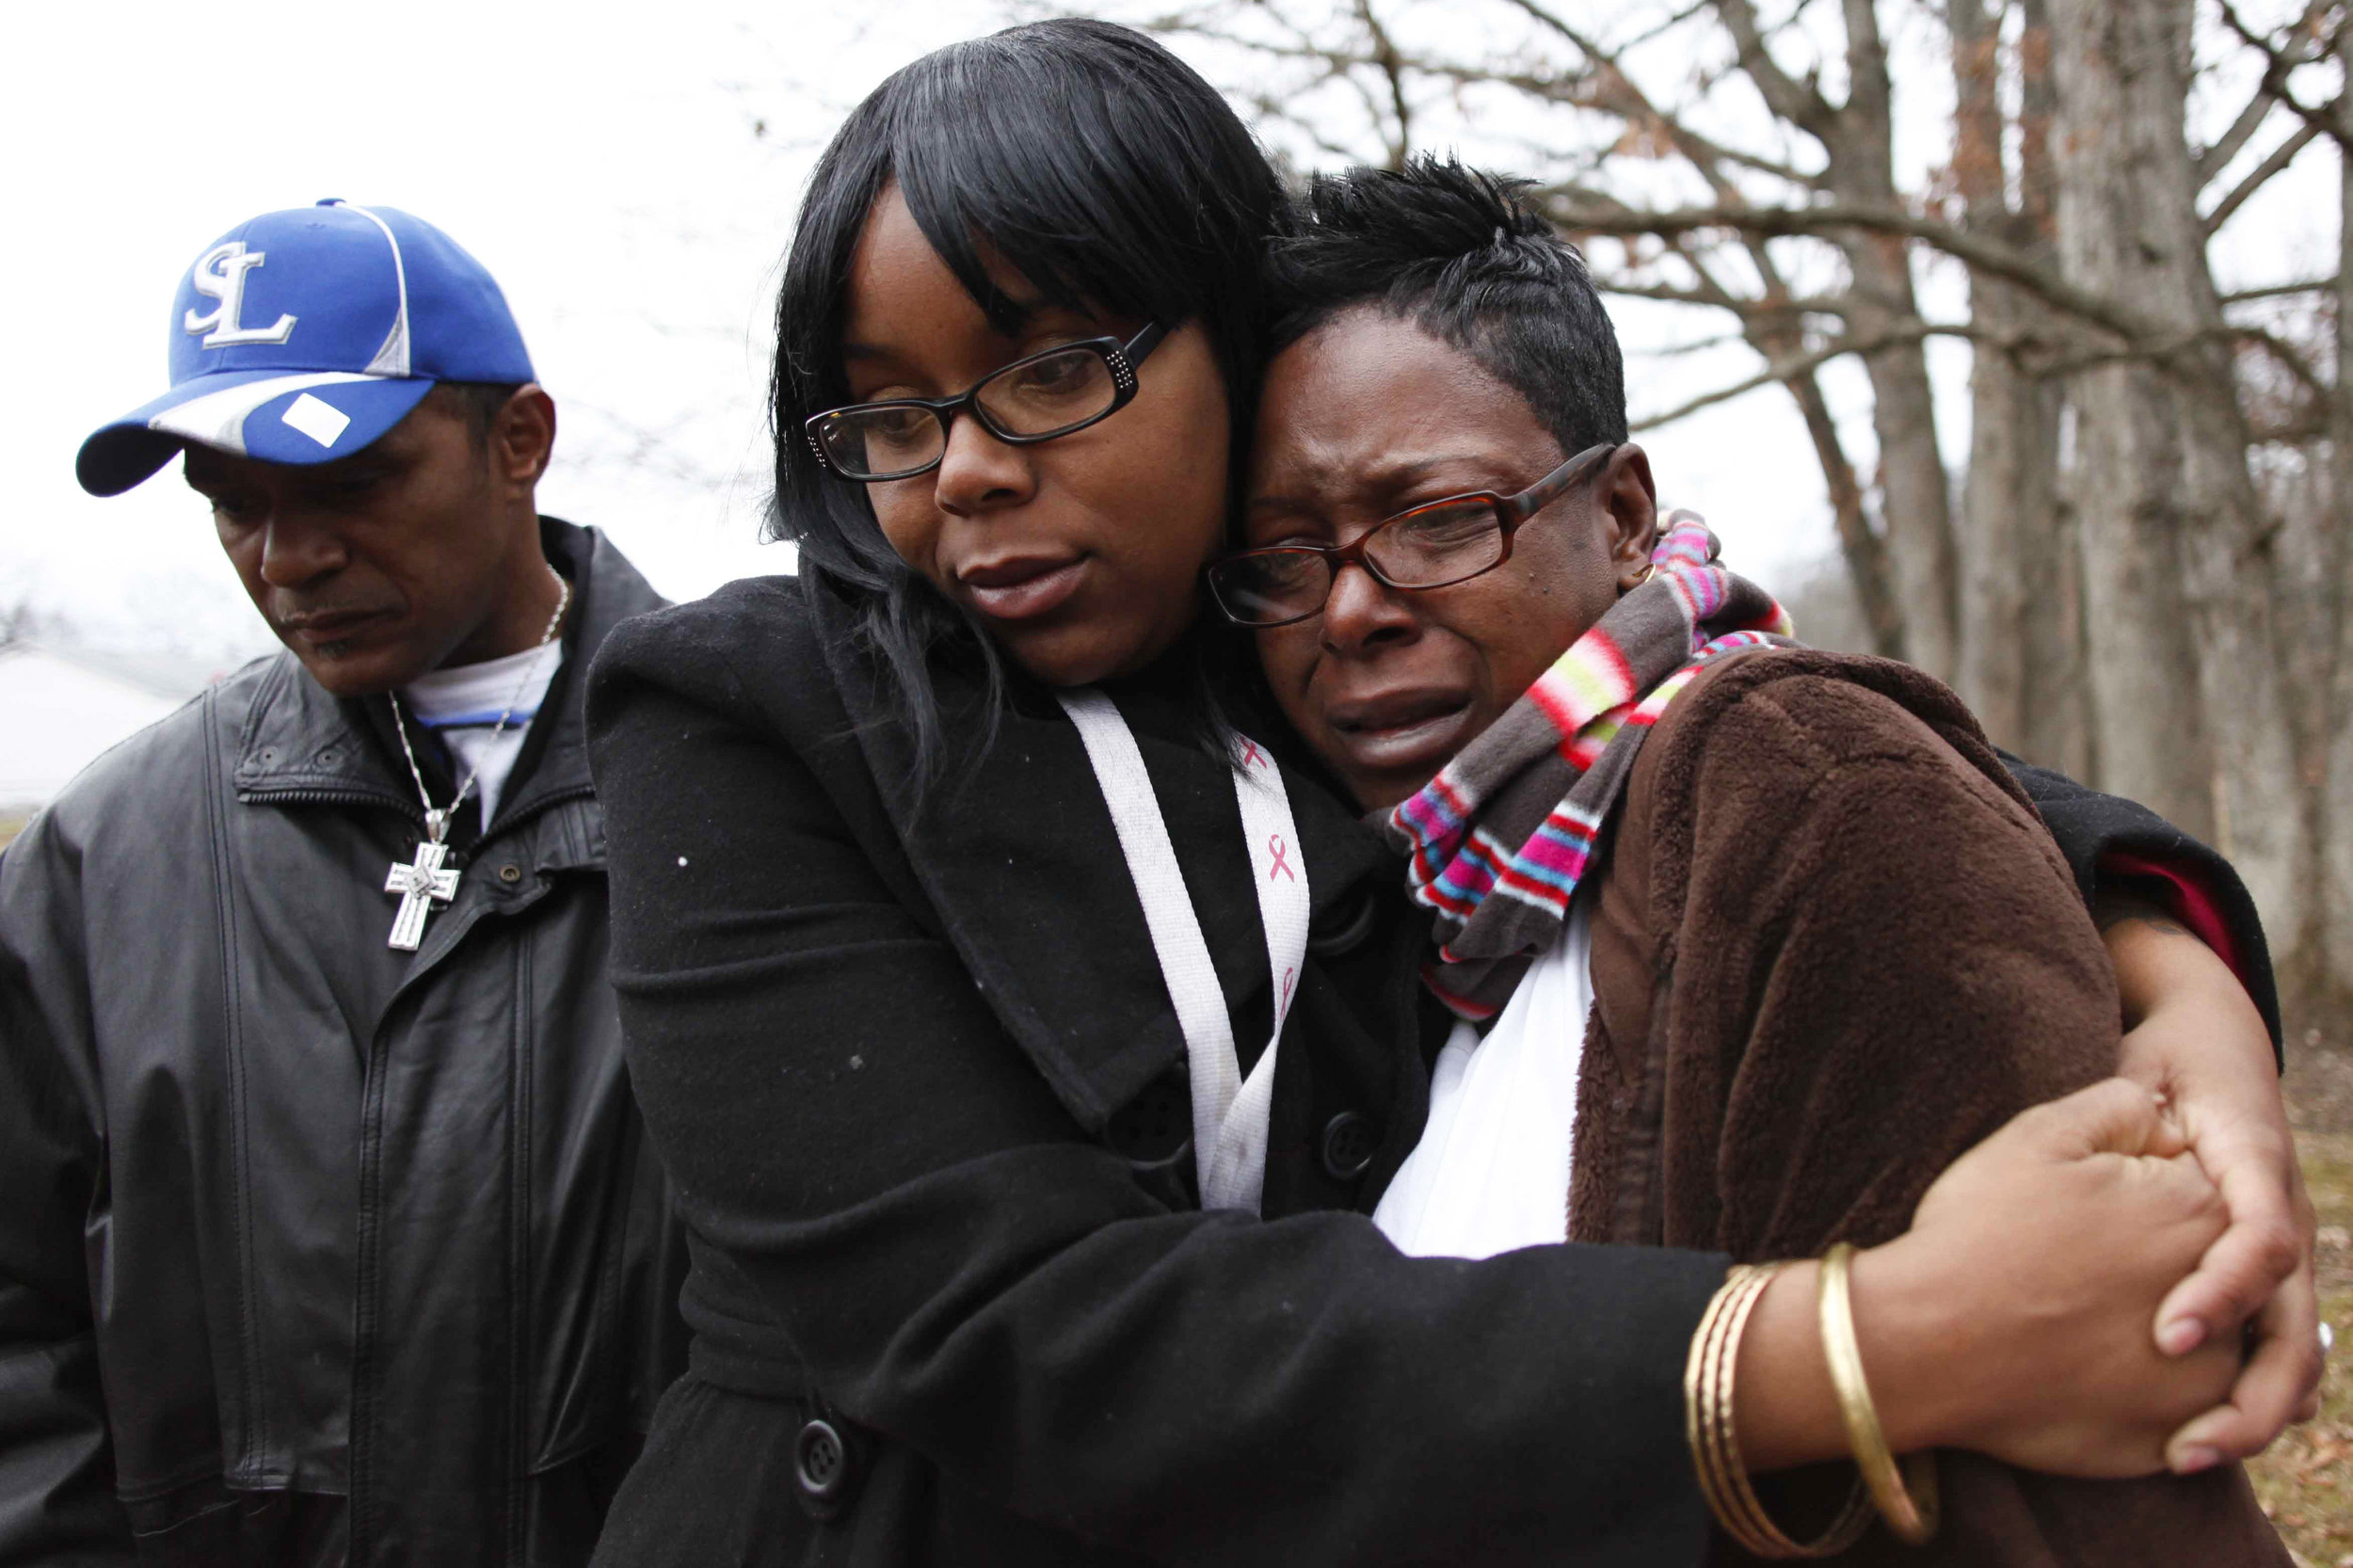 Taquaisha Nelson, center, hugs her mother Trinia Nelson, right, as they visit the grave of brother and son, Tevin Nelson, Monday, Dec. 26, 2011 at Log Providence Cemetery. Tevin's father, Keith Holmes, left, looks on his son's grave as well.